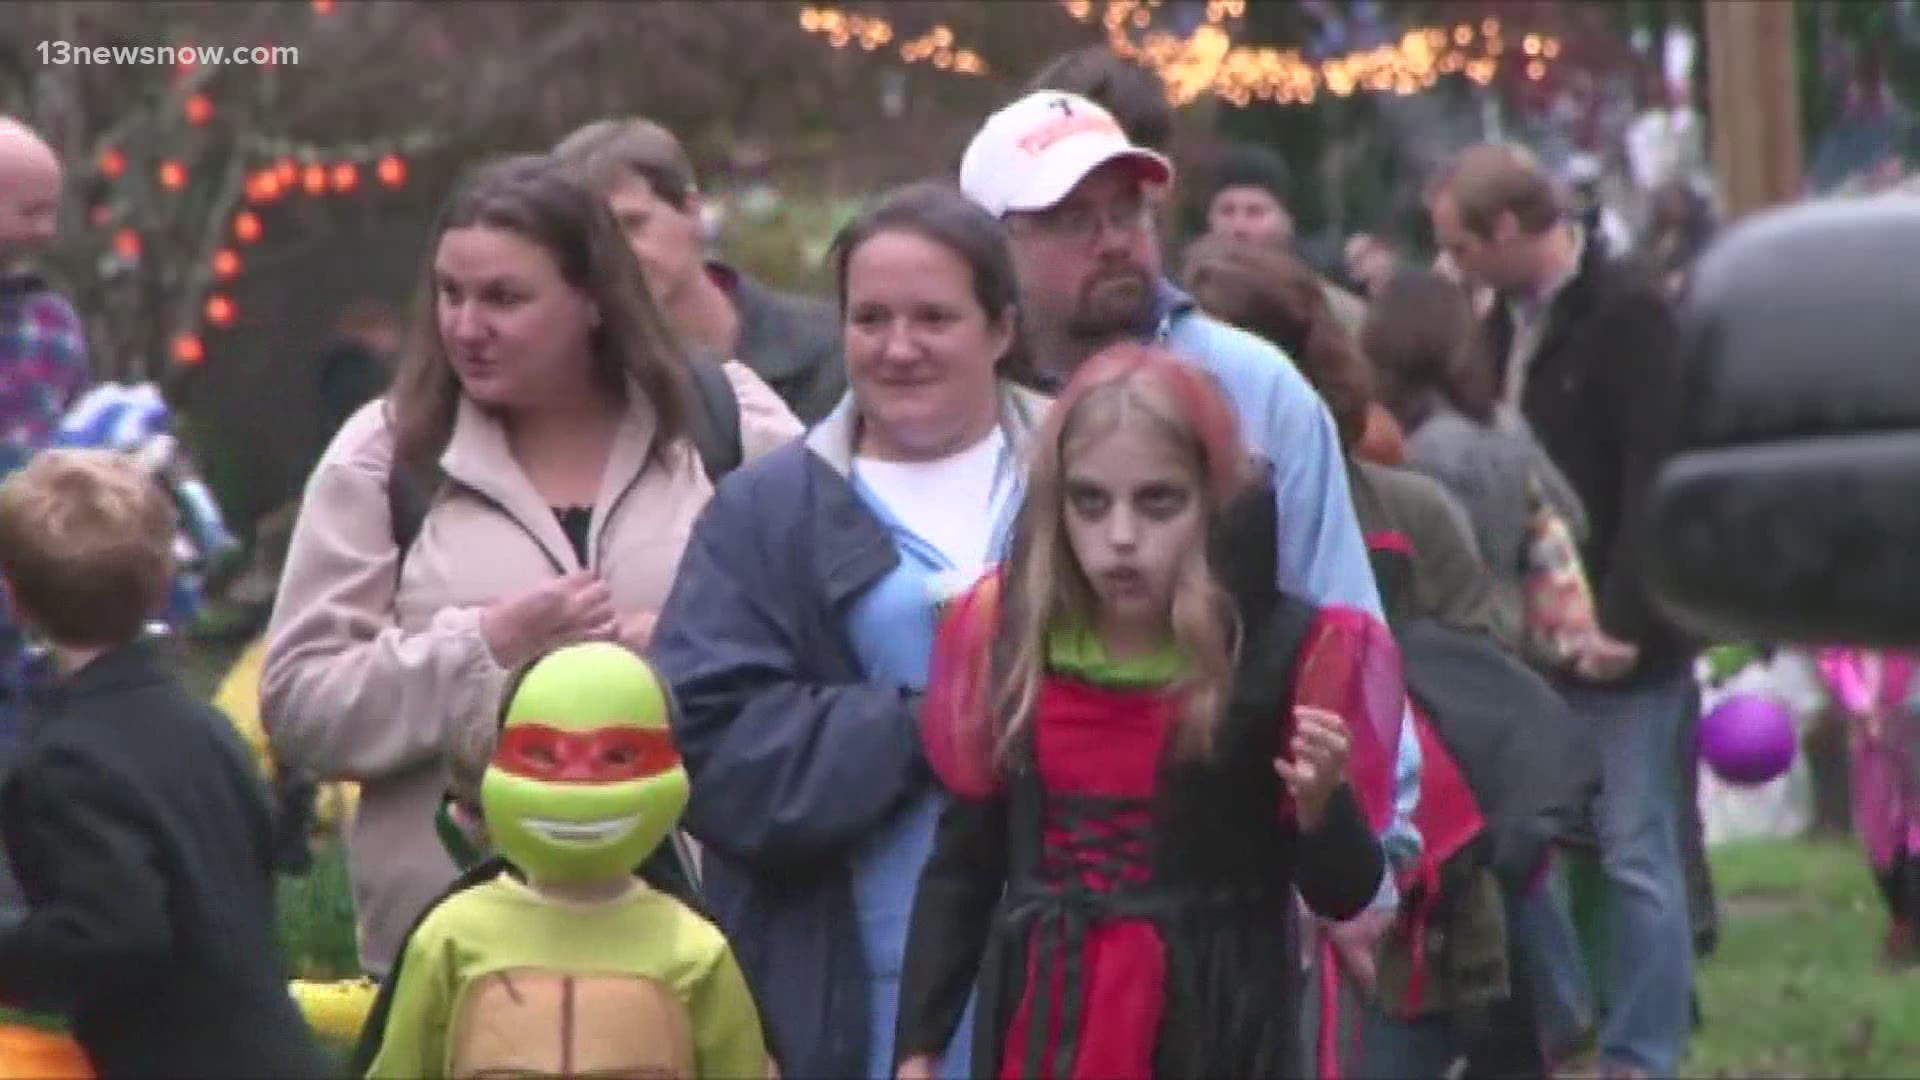 Halloween Events For Kids 2020 In Toledo Is Halloween canceled this year? | wtol.com